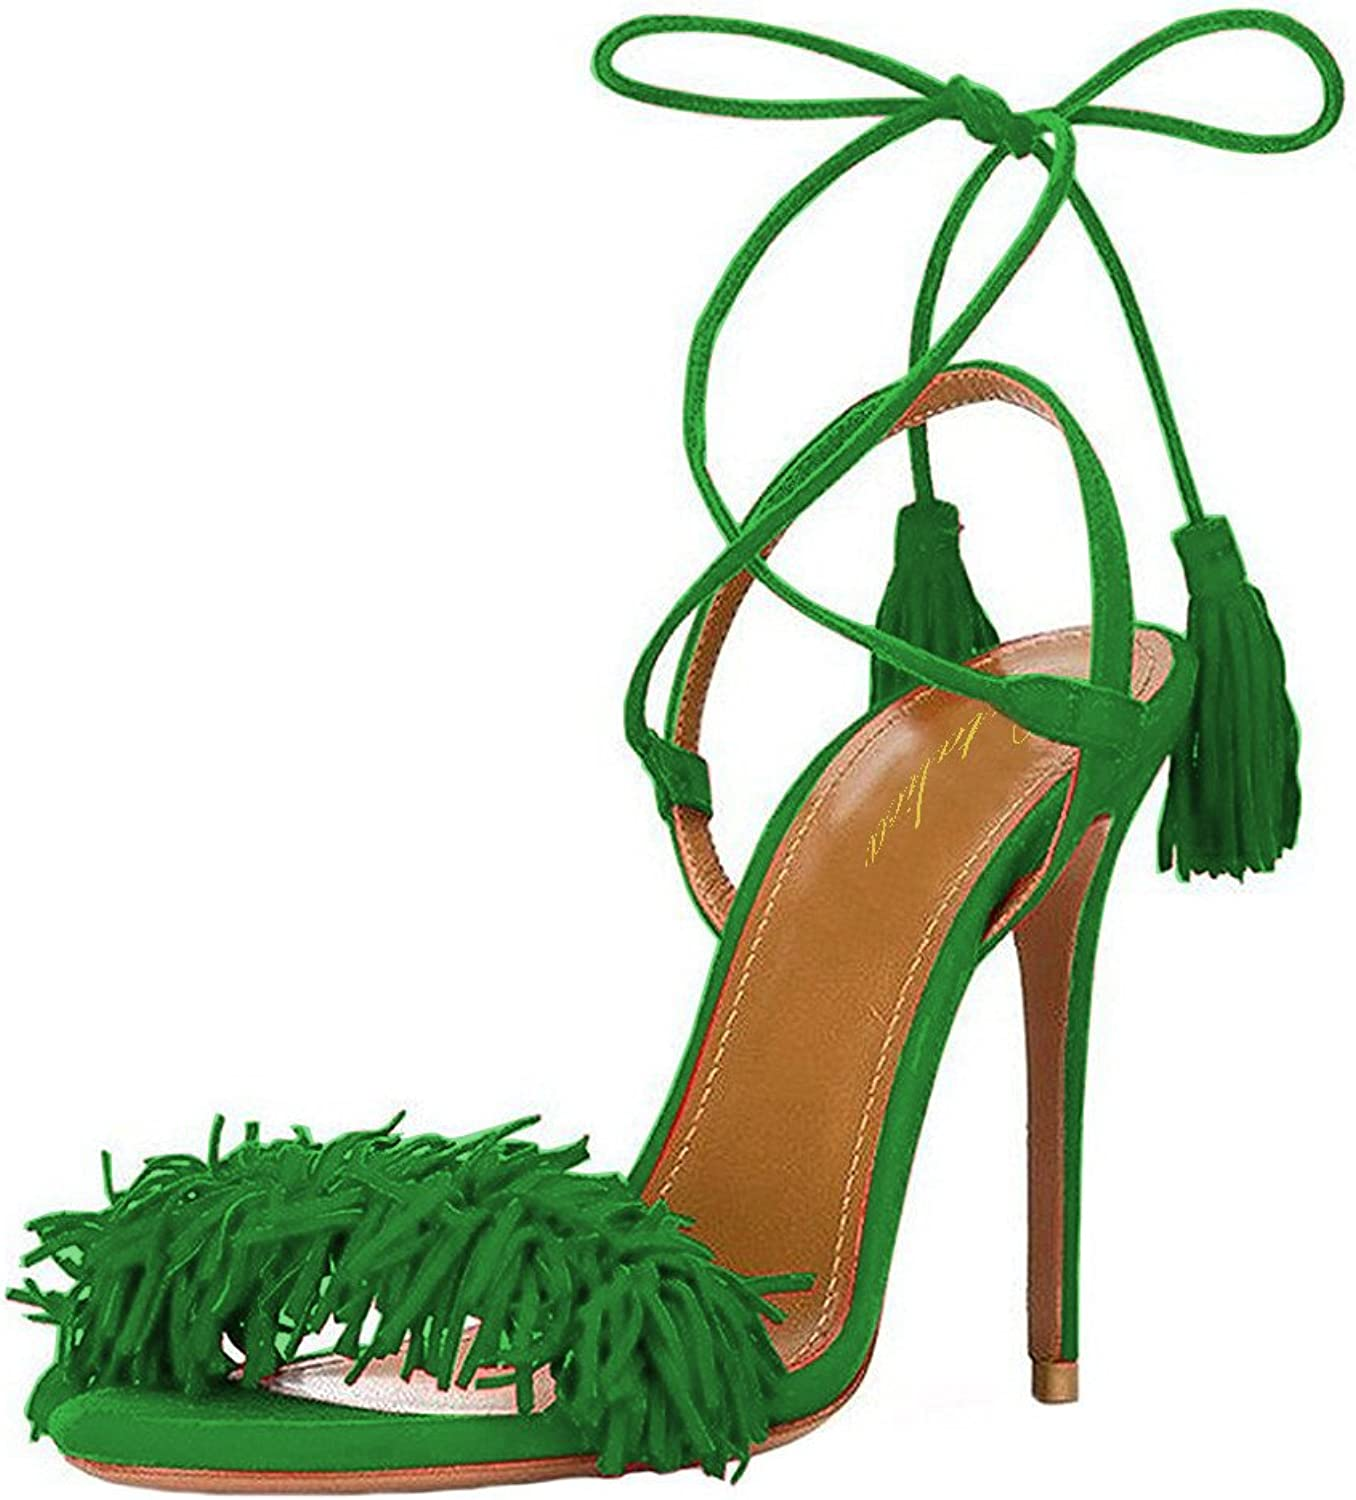 Lutalica Women Ankle Straps Stiletto High Heels Lace up with Tassel Summer Sandals Size 5.5-12 US